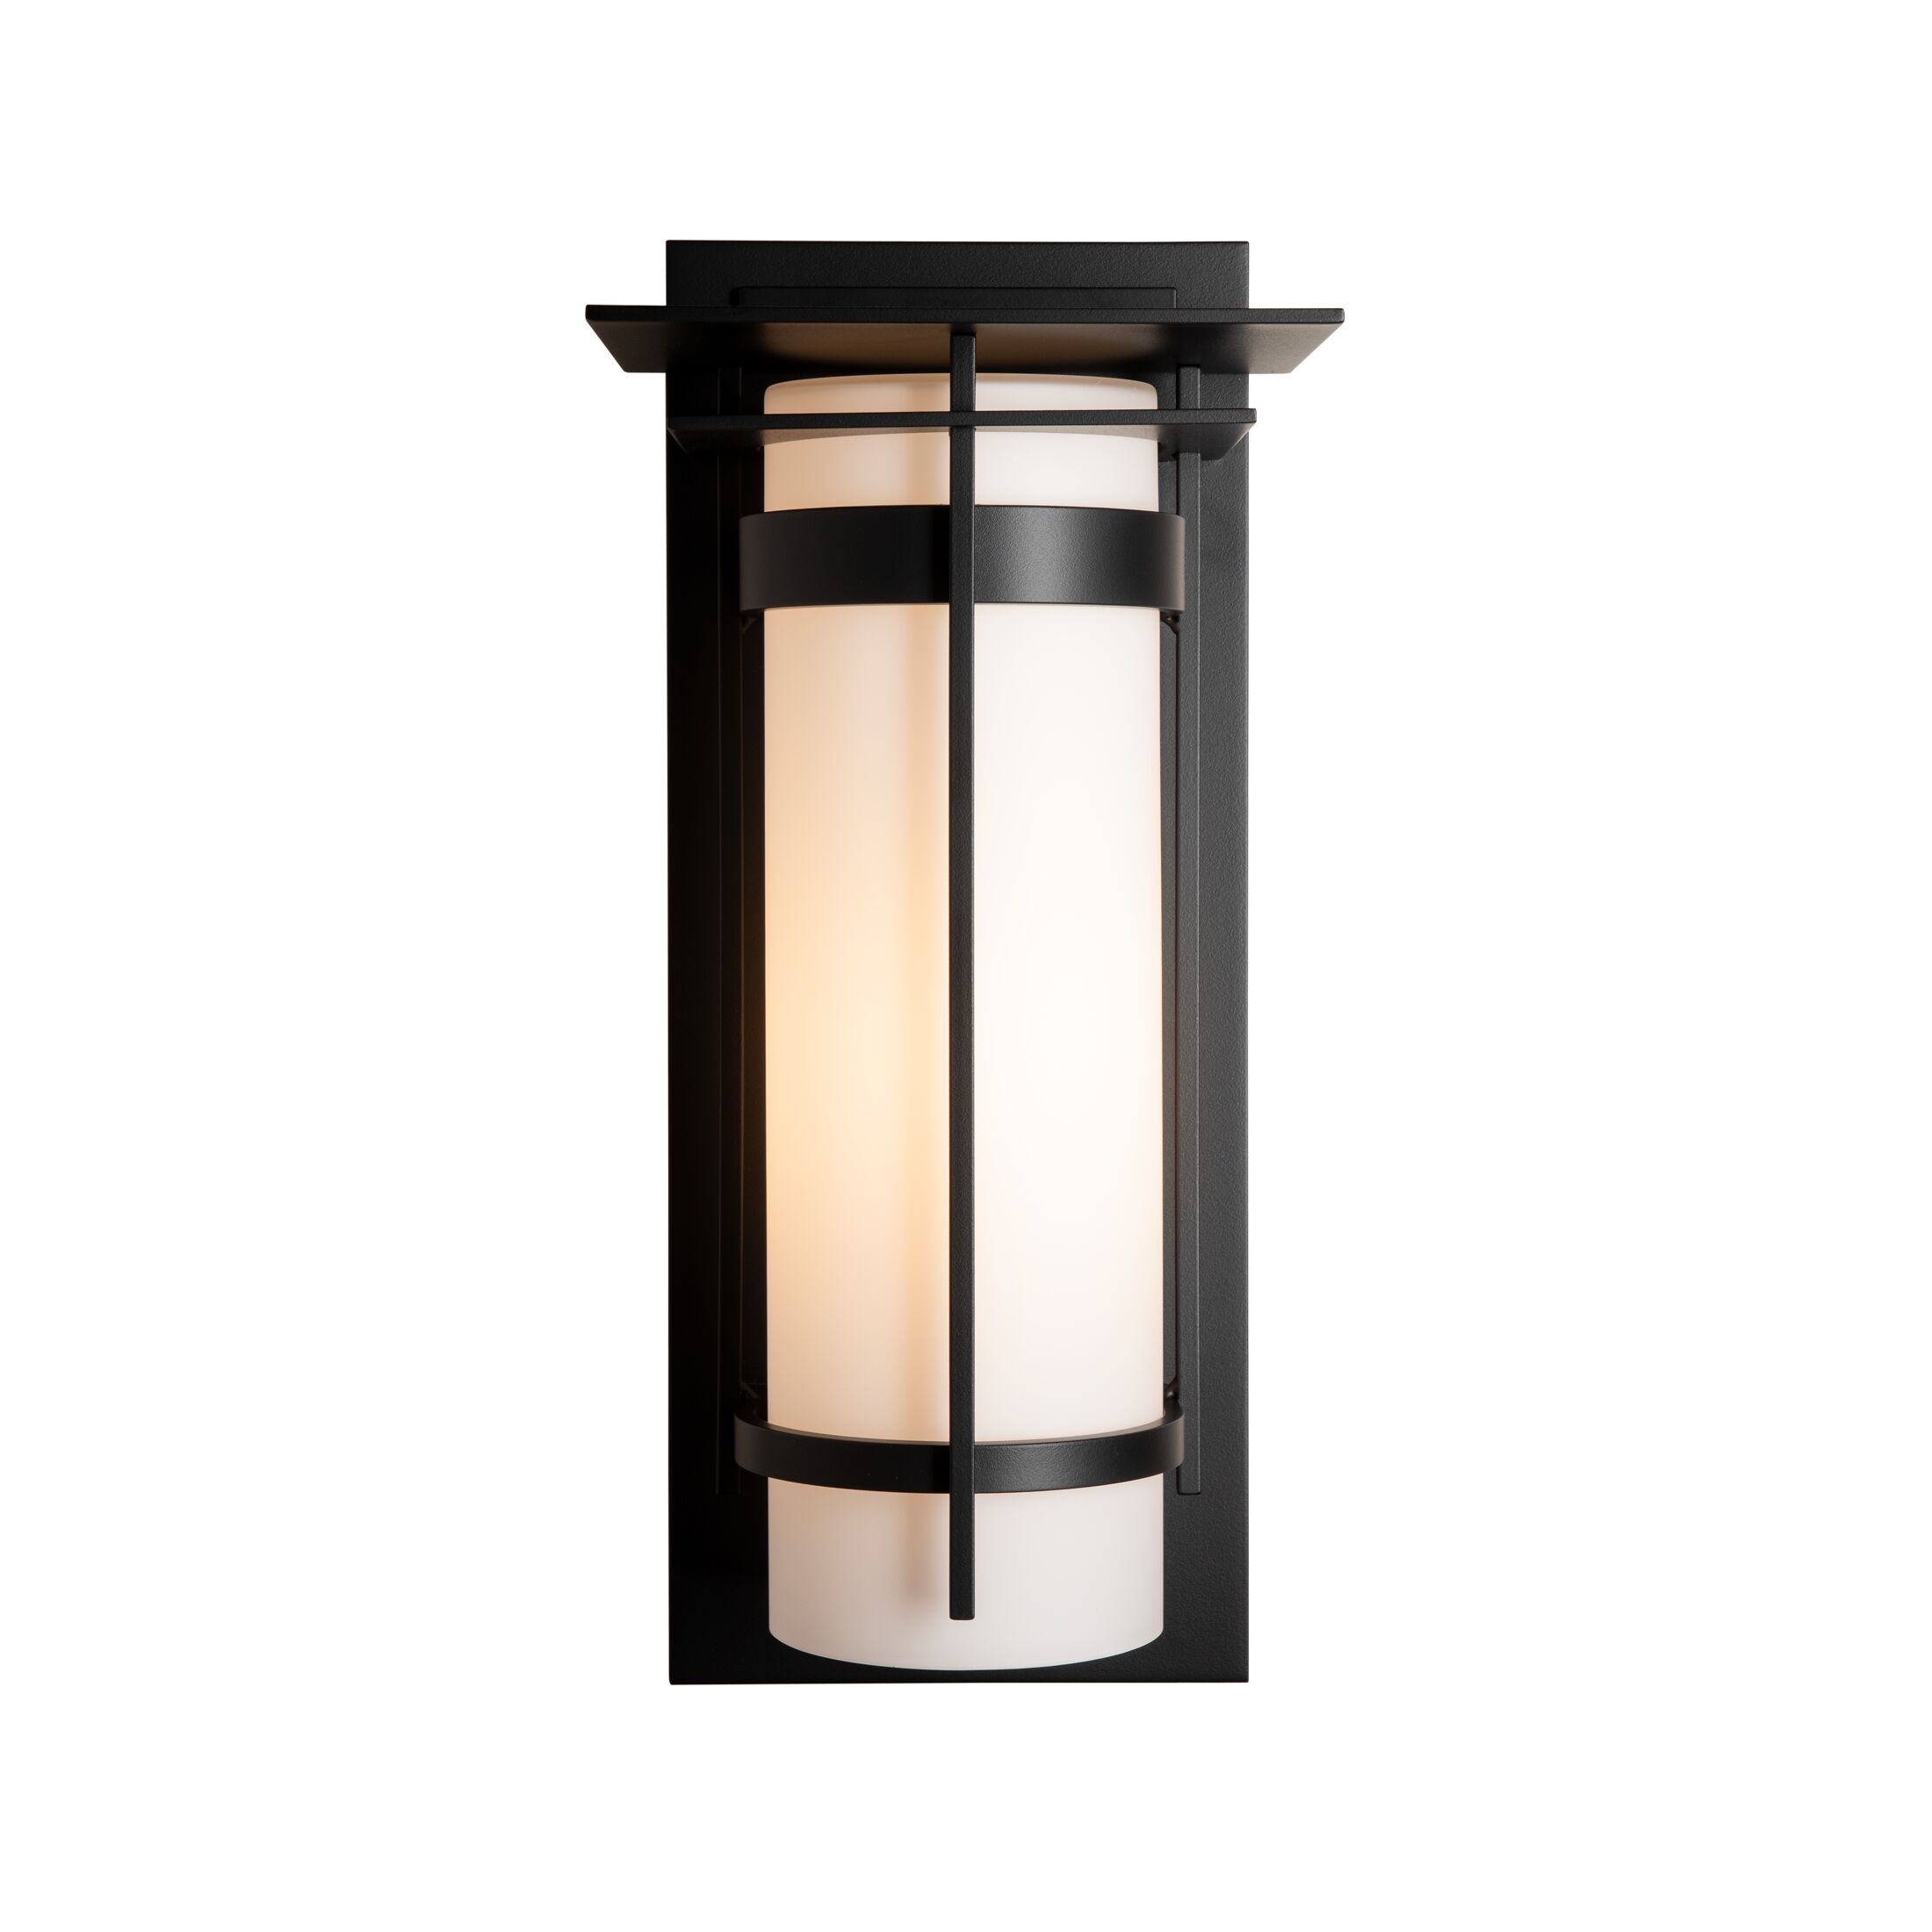 Product Detail: Banded with Top Plate Large Outdoor Sconce